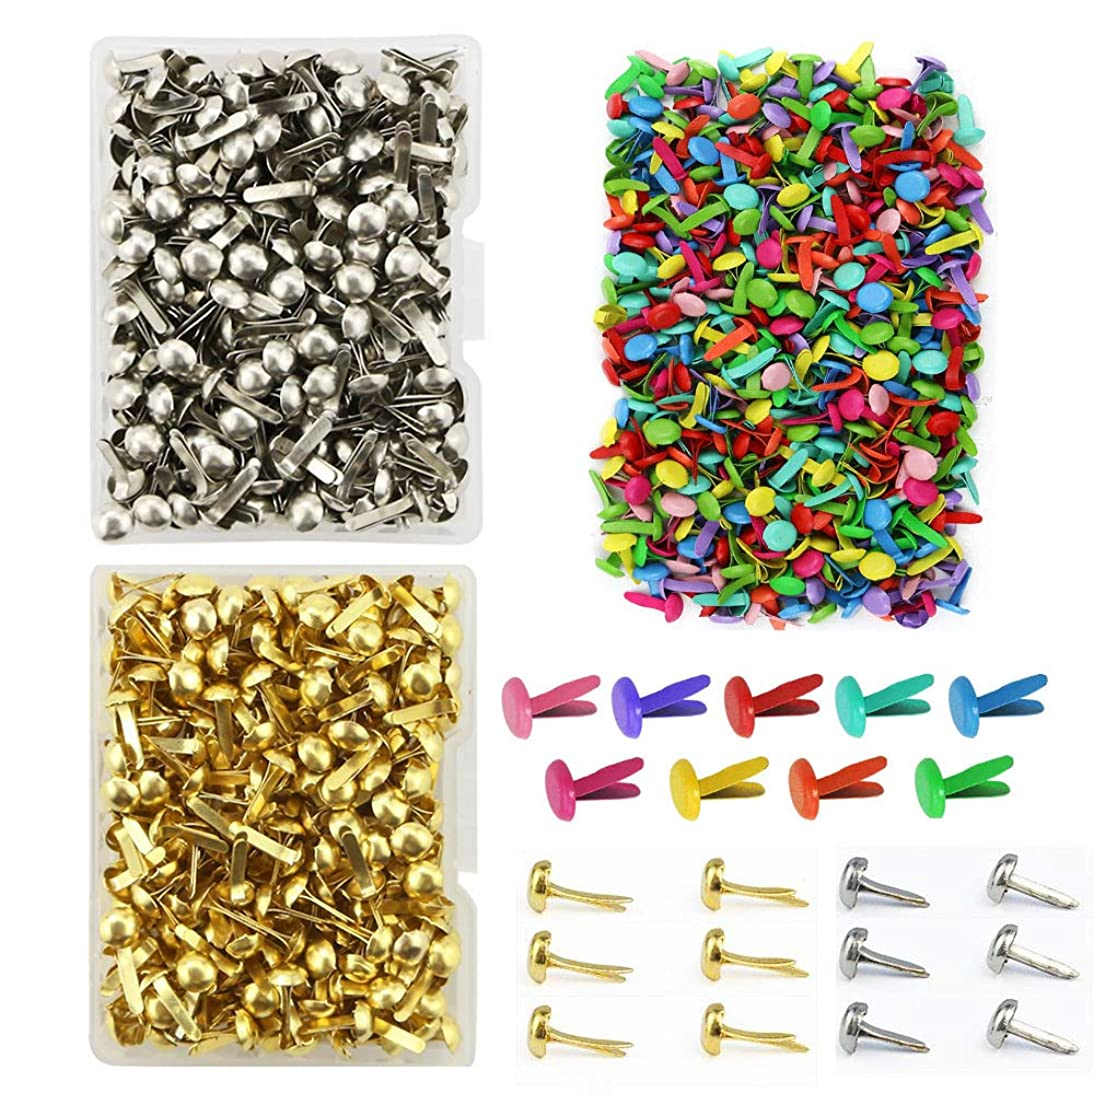 600 Pieces 8 x 12mm Assorted Bright Color Mini Brads Round Paper Fasteners Brass Pastel Metal Brads for Scrapbooking Crafts DIY Paper (8 x 12mm)